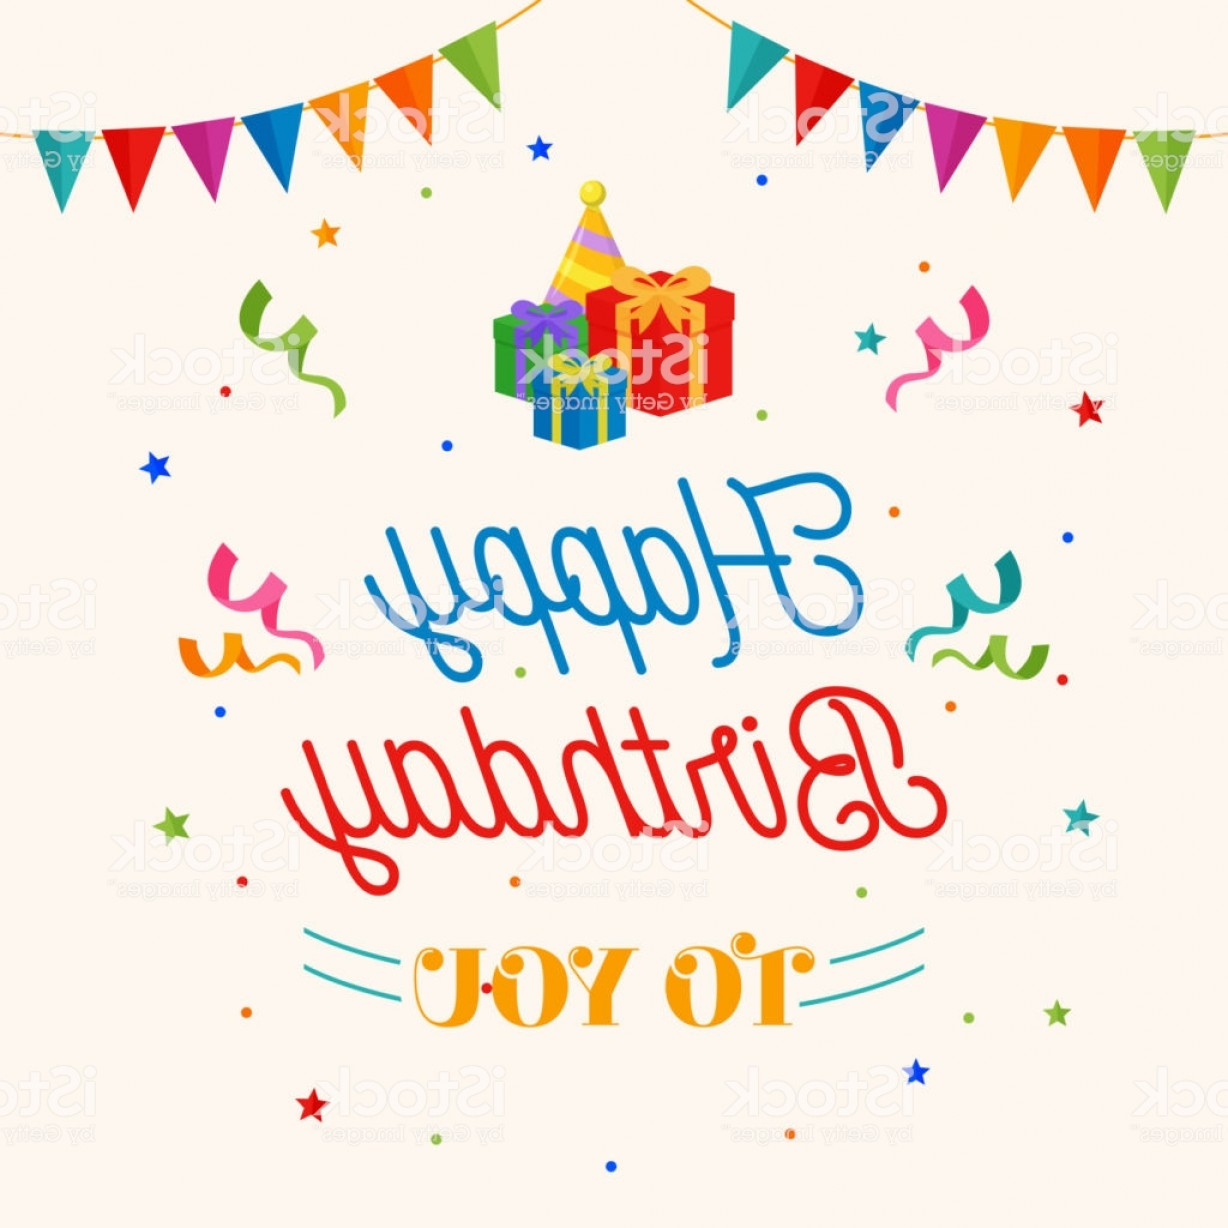 Happy Birthday Vector Art Backdrop: Happy Birthday To You Background Vector Gift Box Party Hat Illustration With Flag Gm